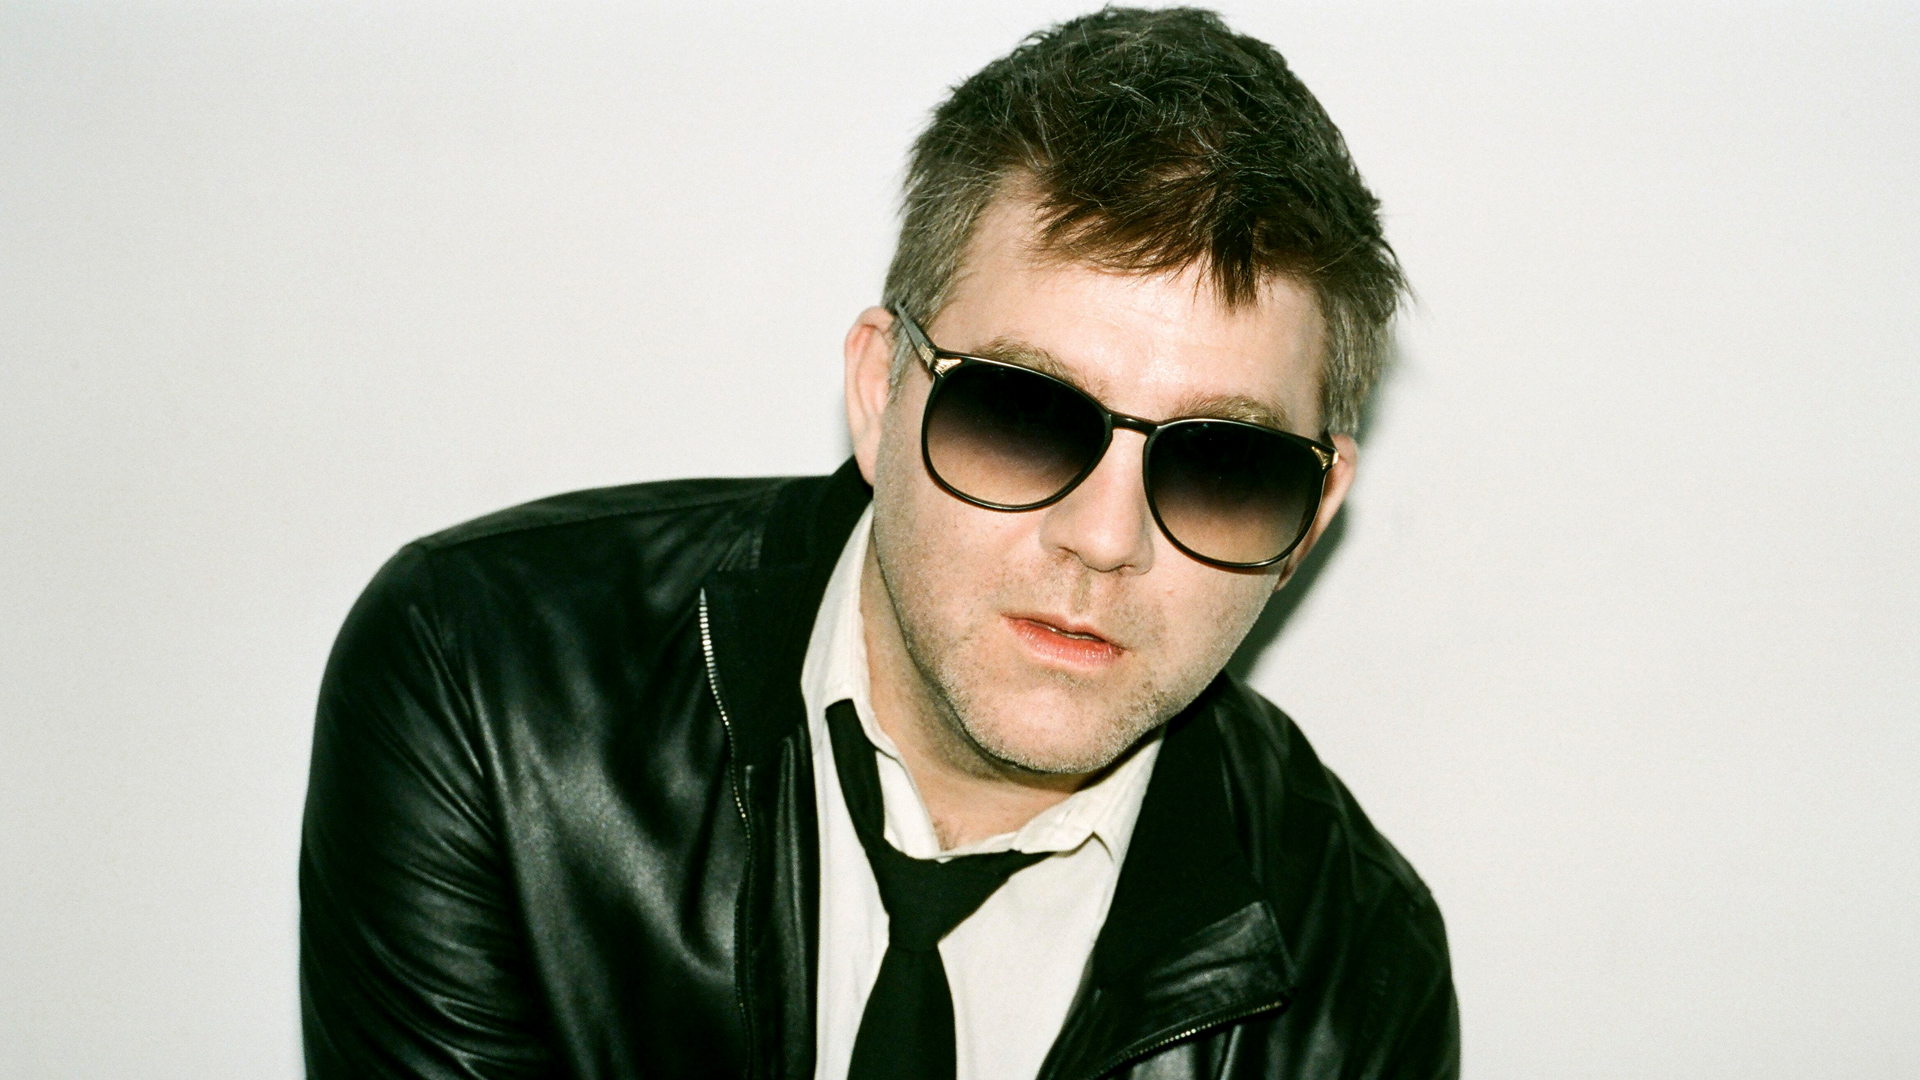 Amazing LCD Soundsystem Pictures & Backgrounds